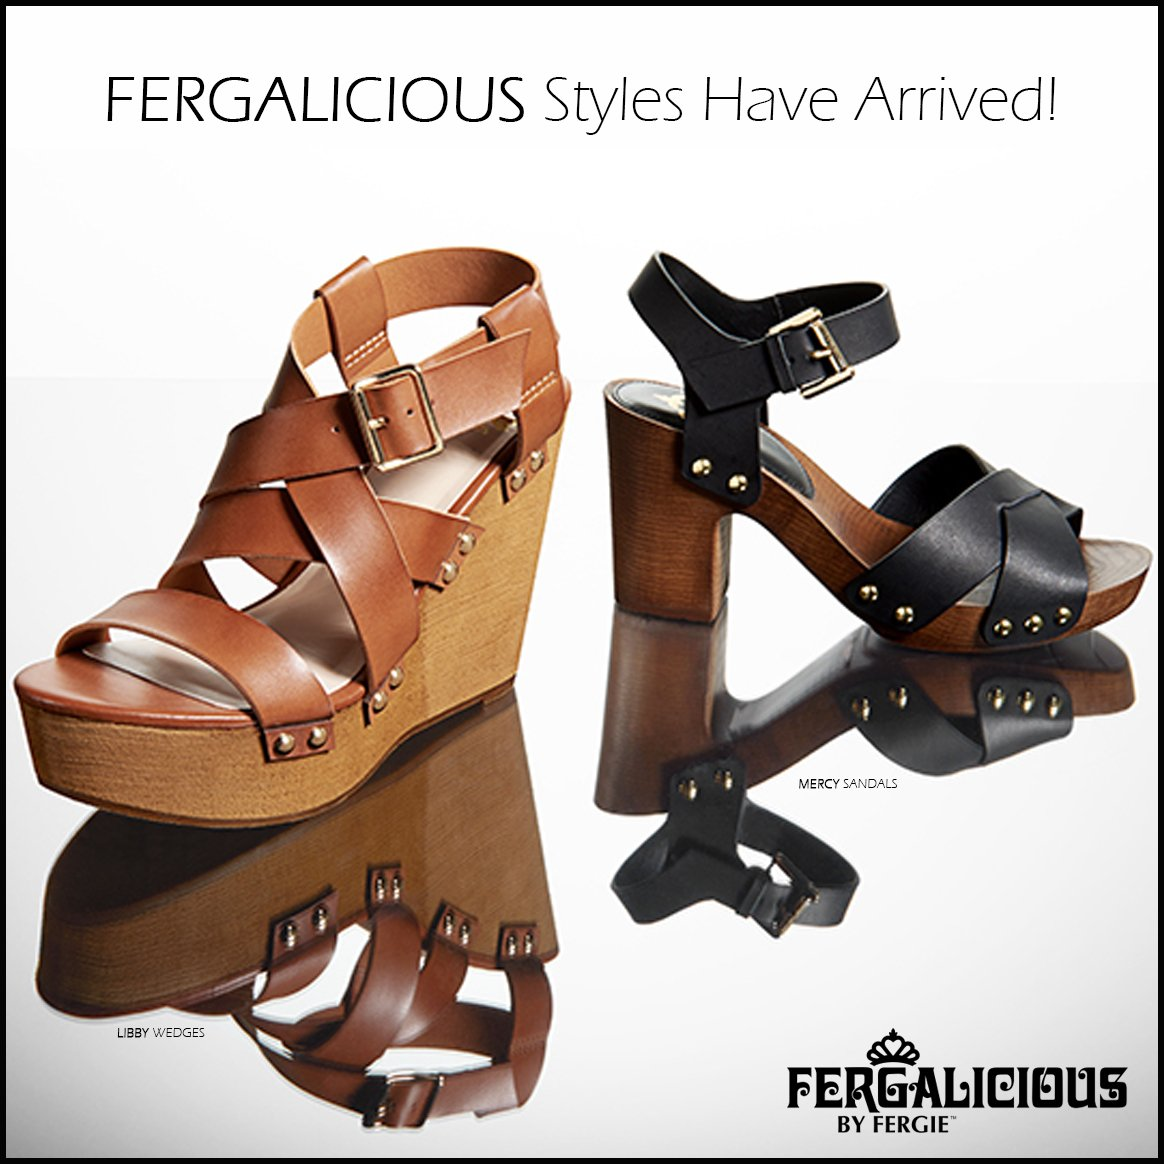 RT @FergaliciousBF: Now u can shop glamorous #Fergalicious By #Fergie #sandals & more on https://t.co/zncLCq6Bab!https://t.co/NWYCUncuY8 ht…